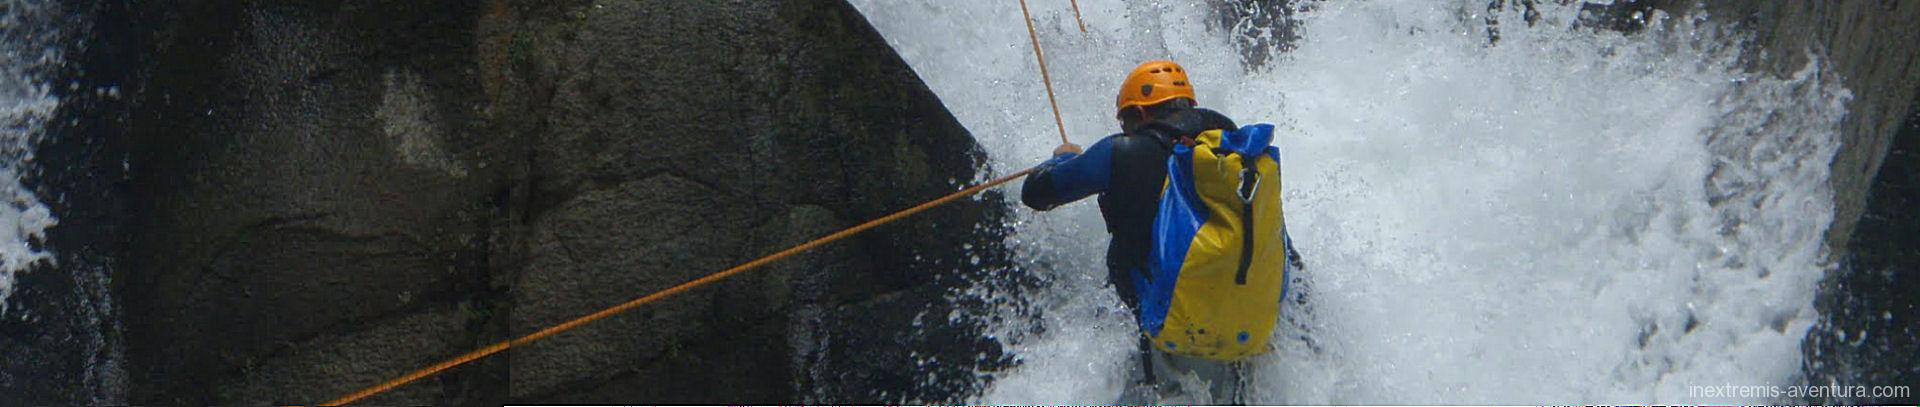 Canyoning in the Pyrenees - Southern France